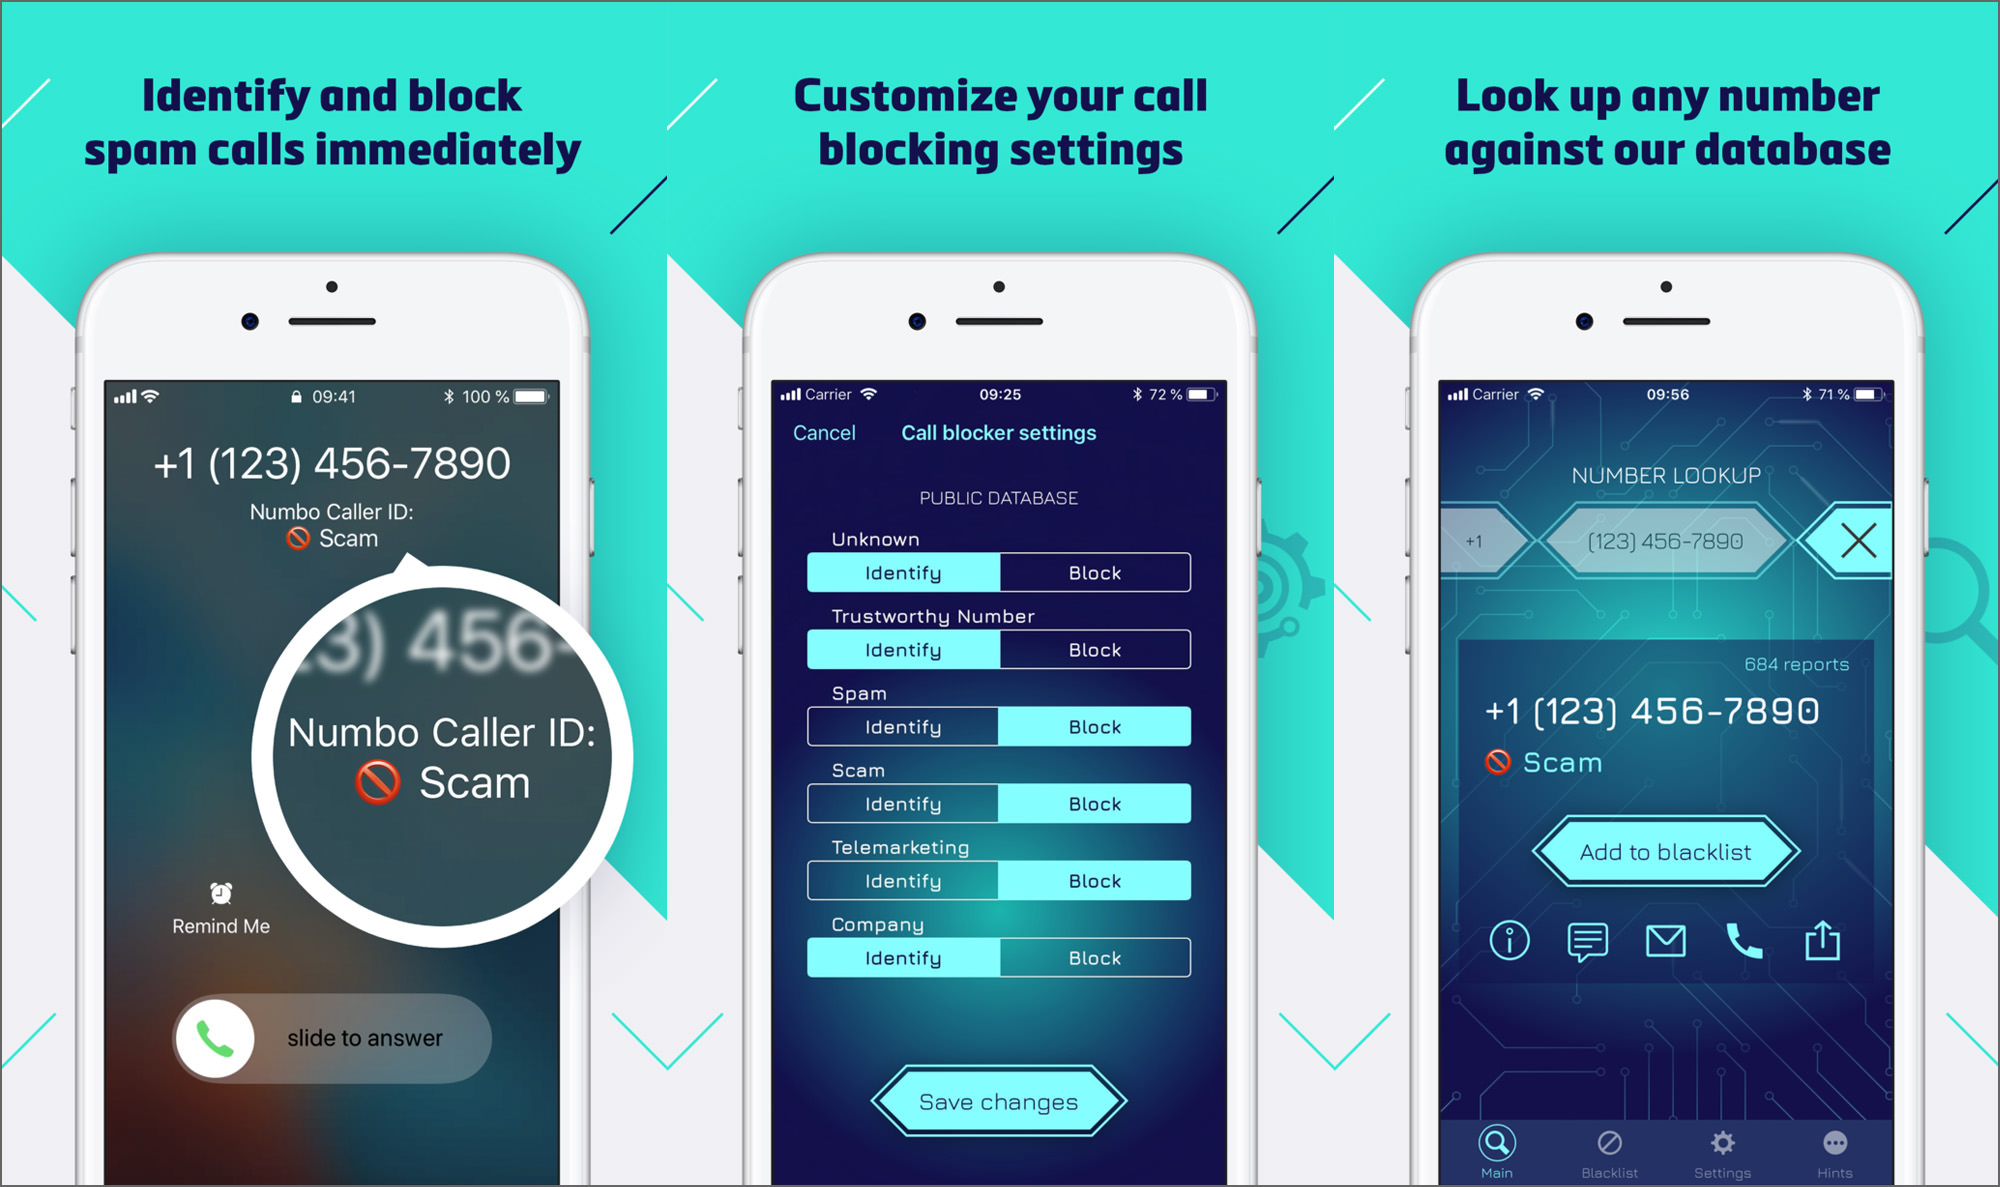 7 Best Spam Call Blockers - Stop Robocalls And Telemarketers